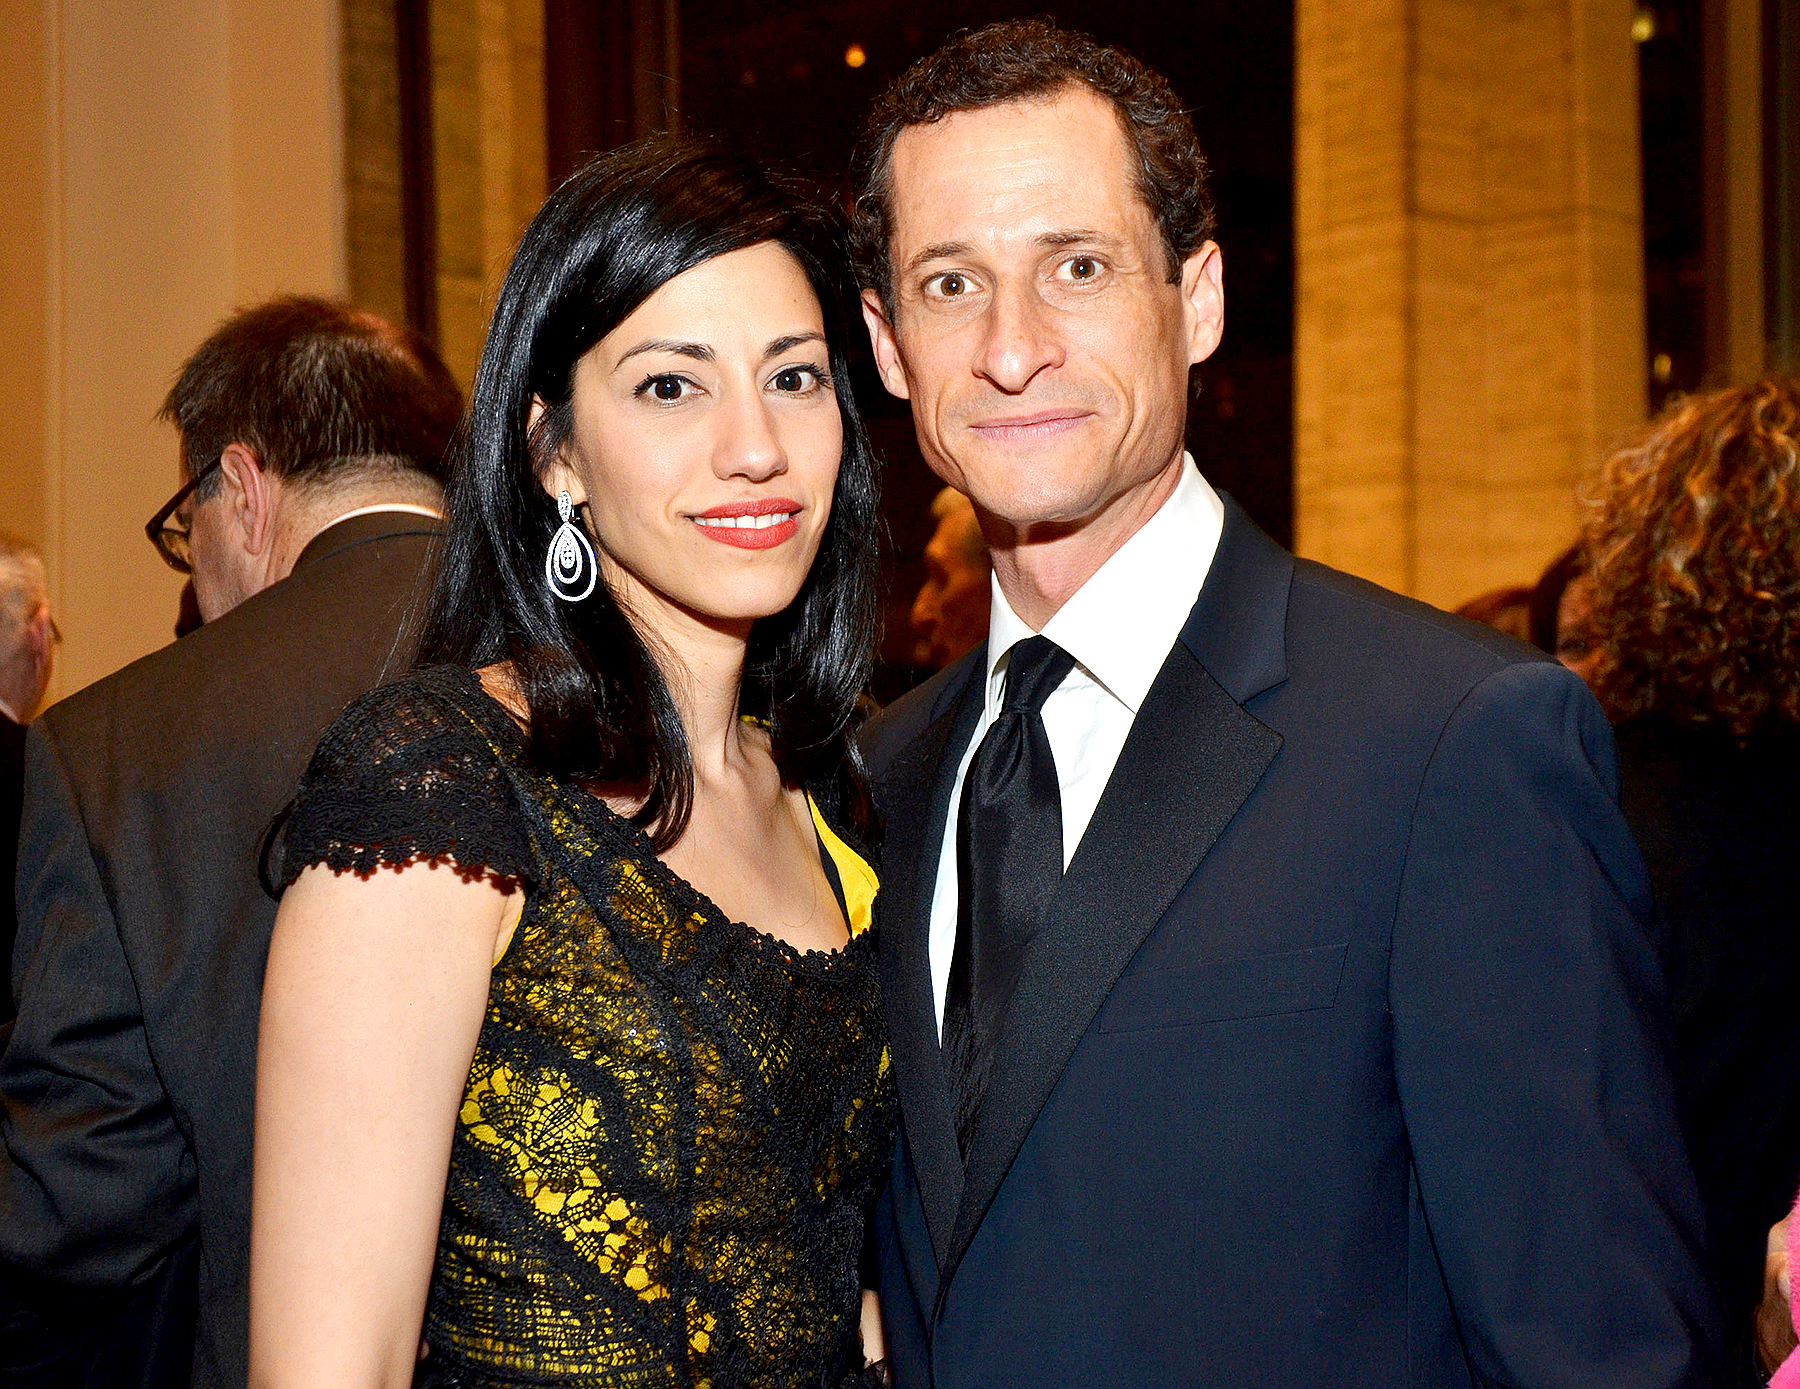 Anthony Weiner and Huma Abedin Call Off Divorce